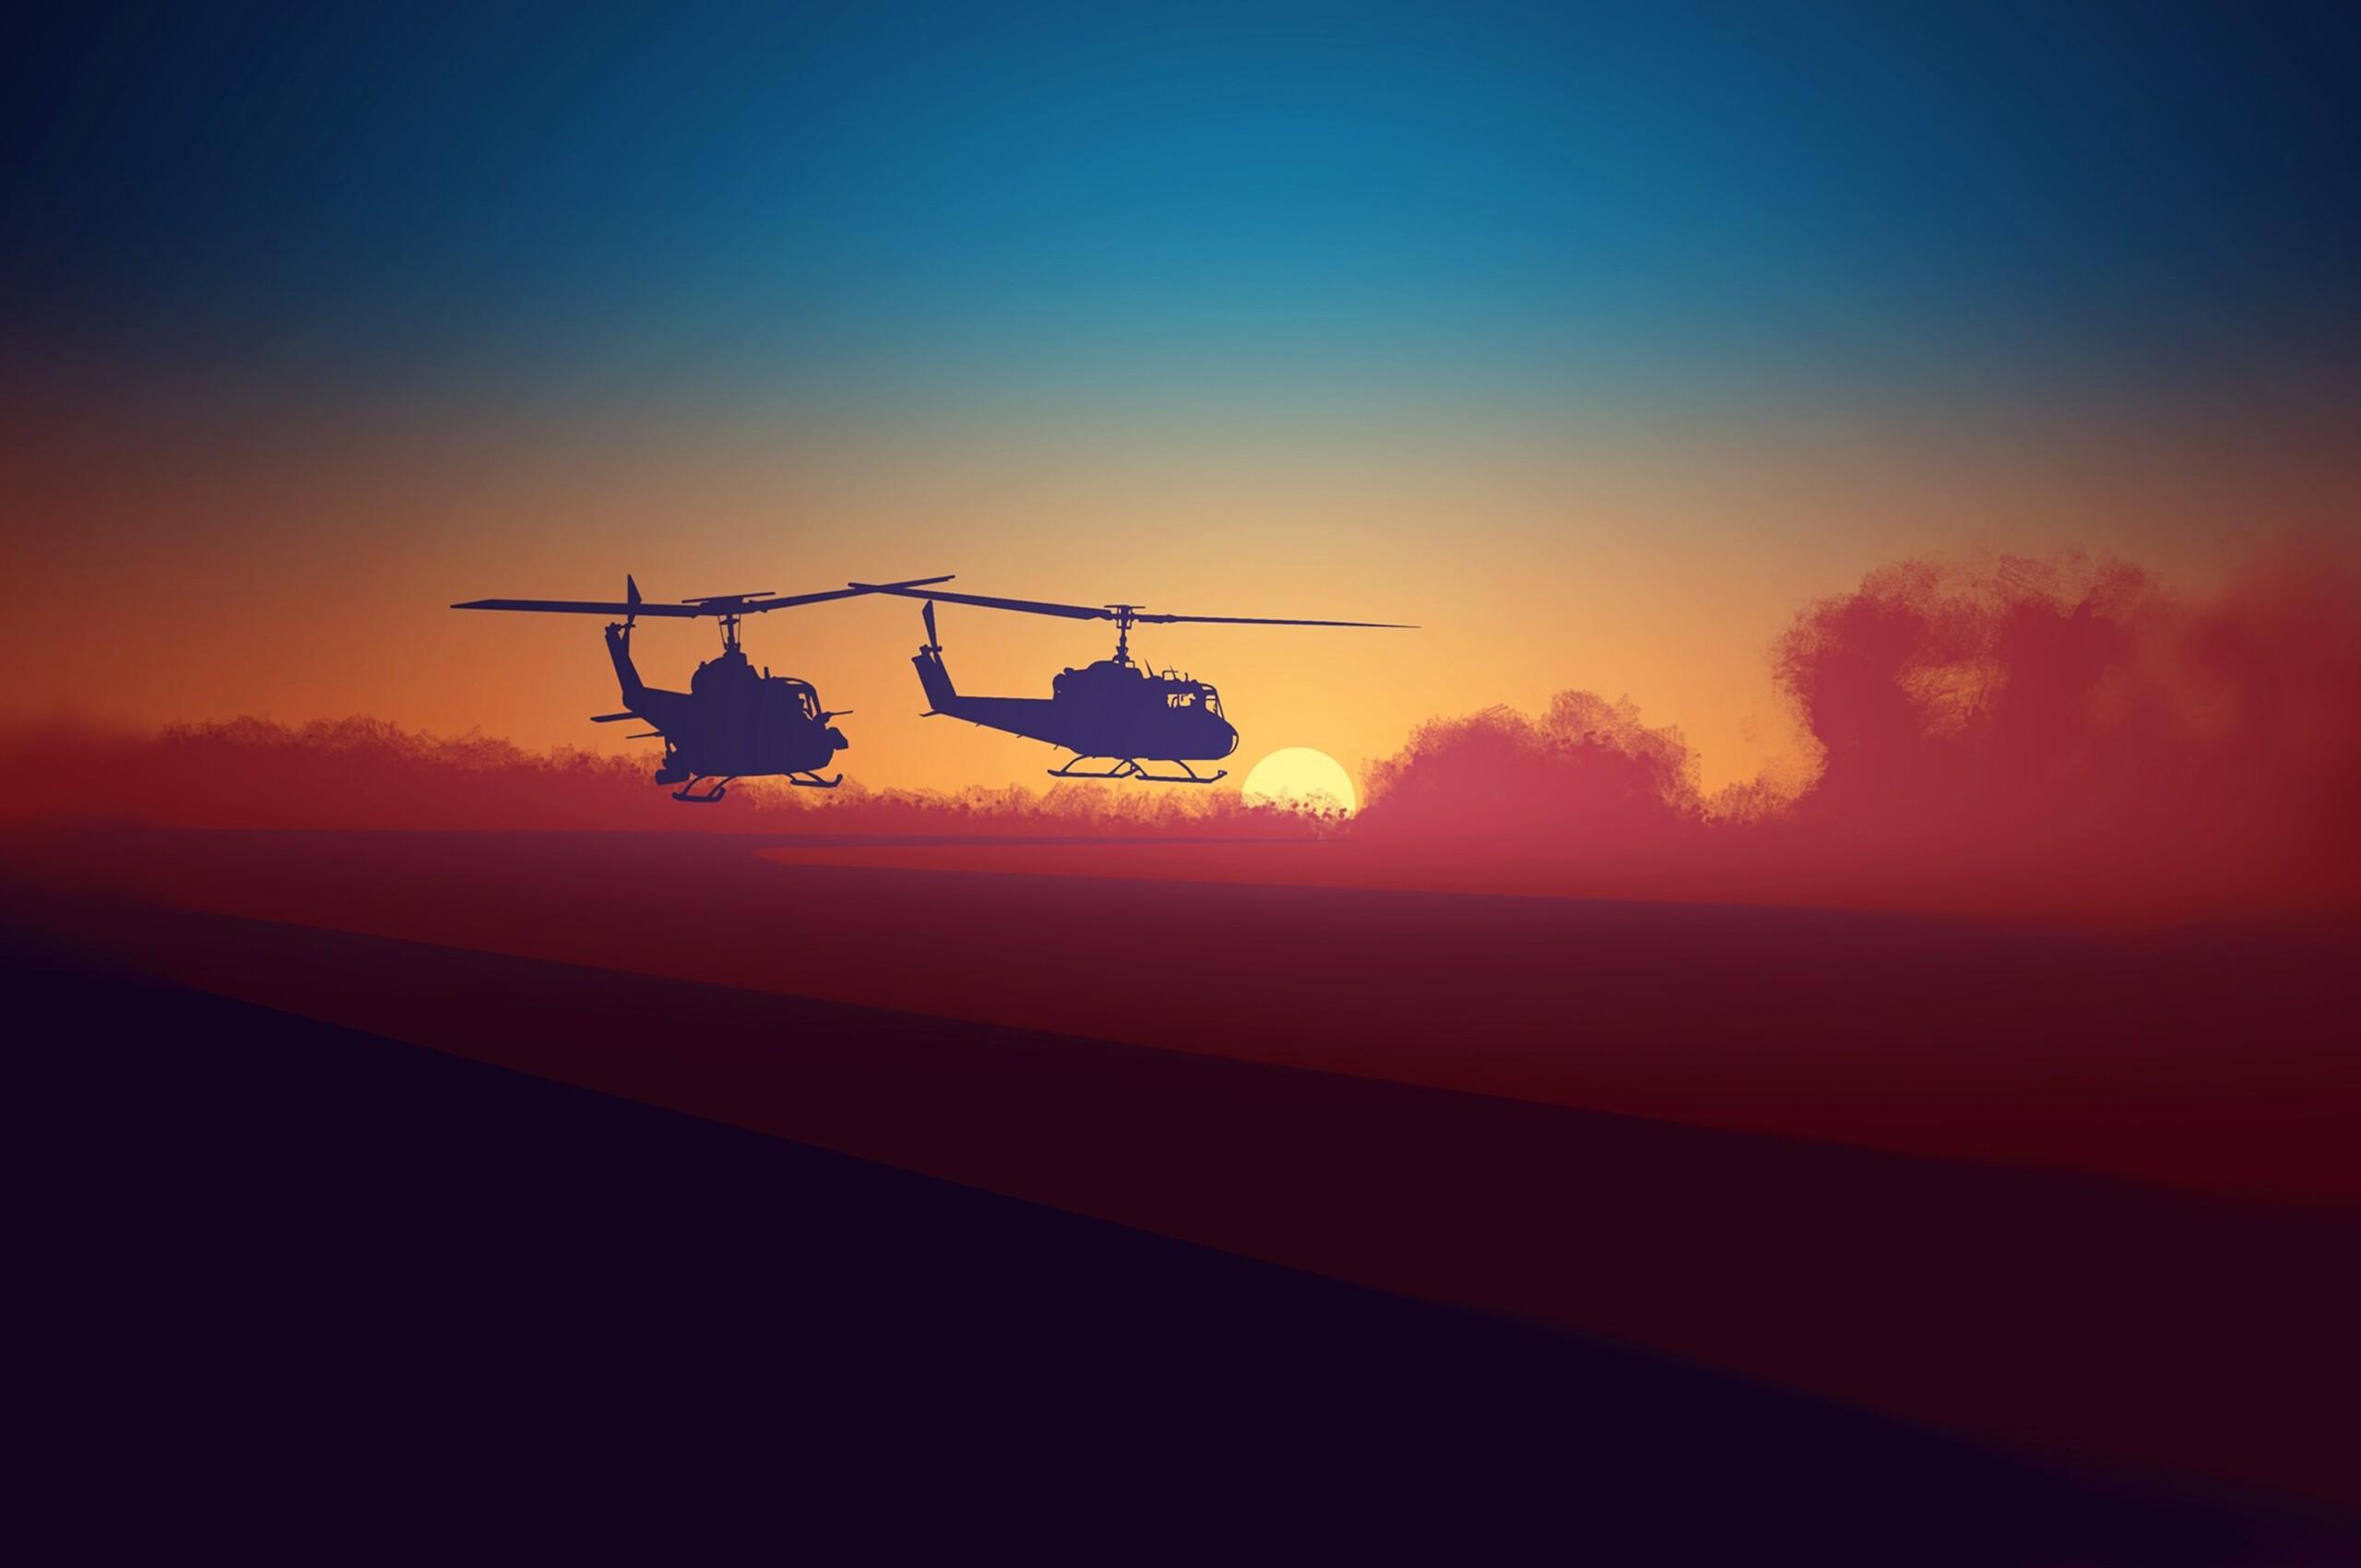 military-helicopters-minimalsm-60.jpg